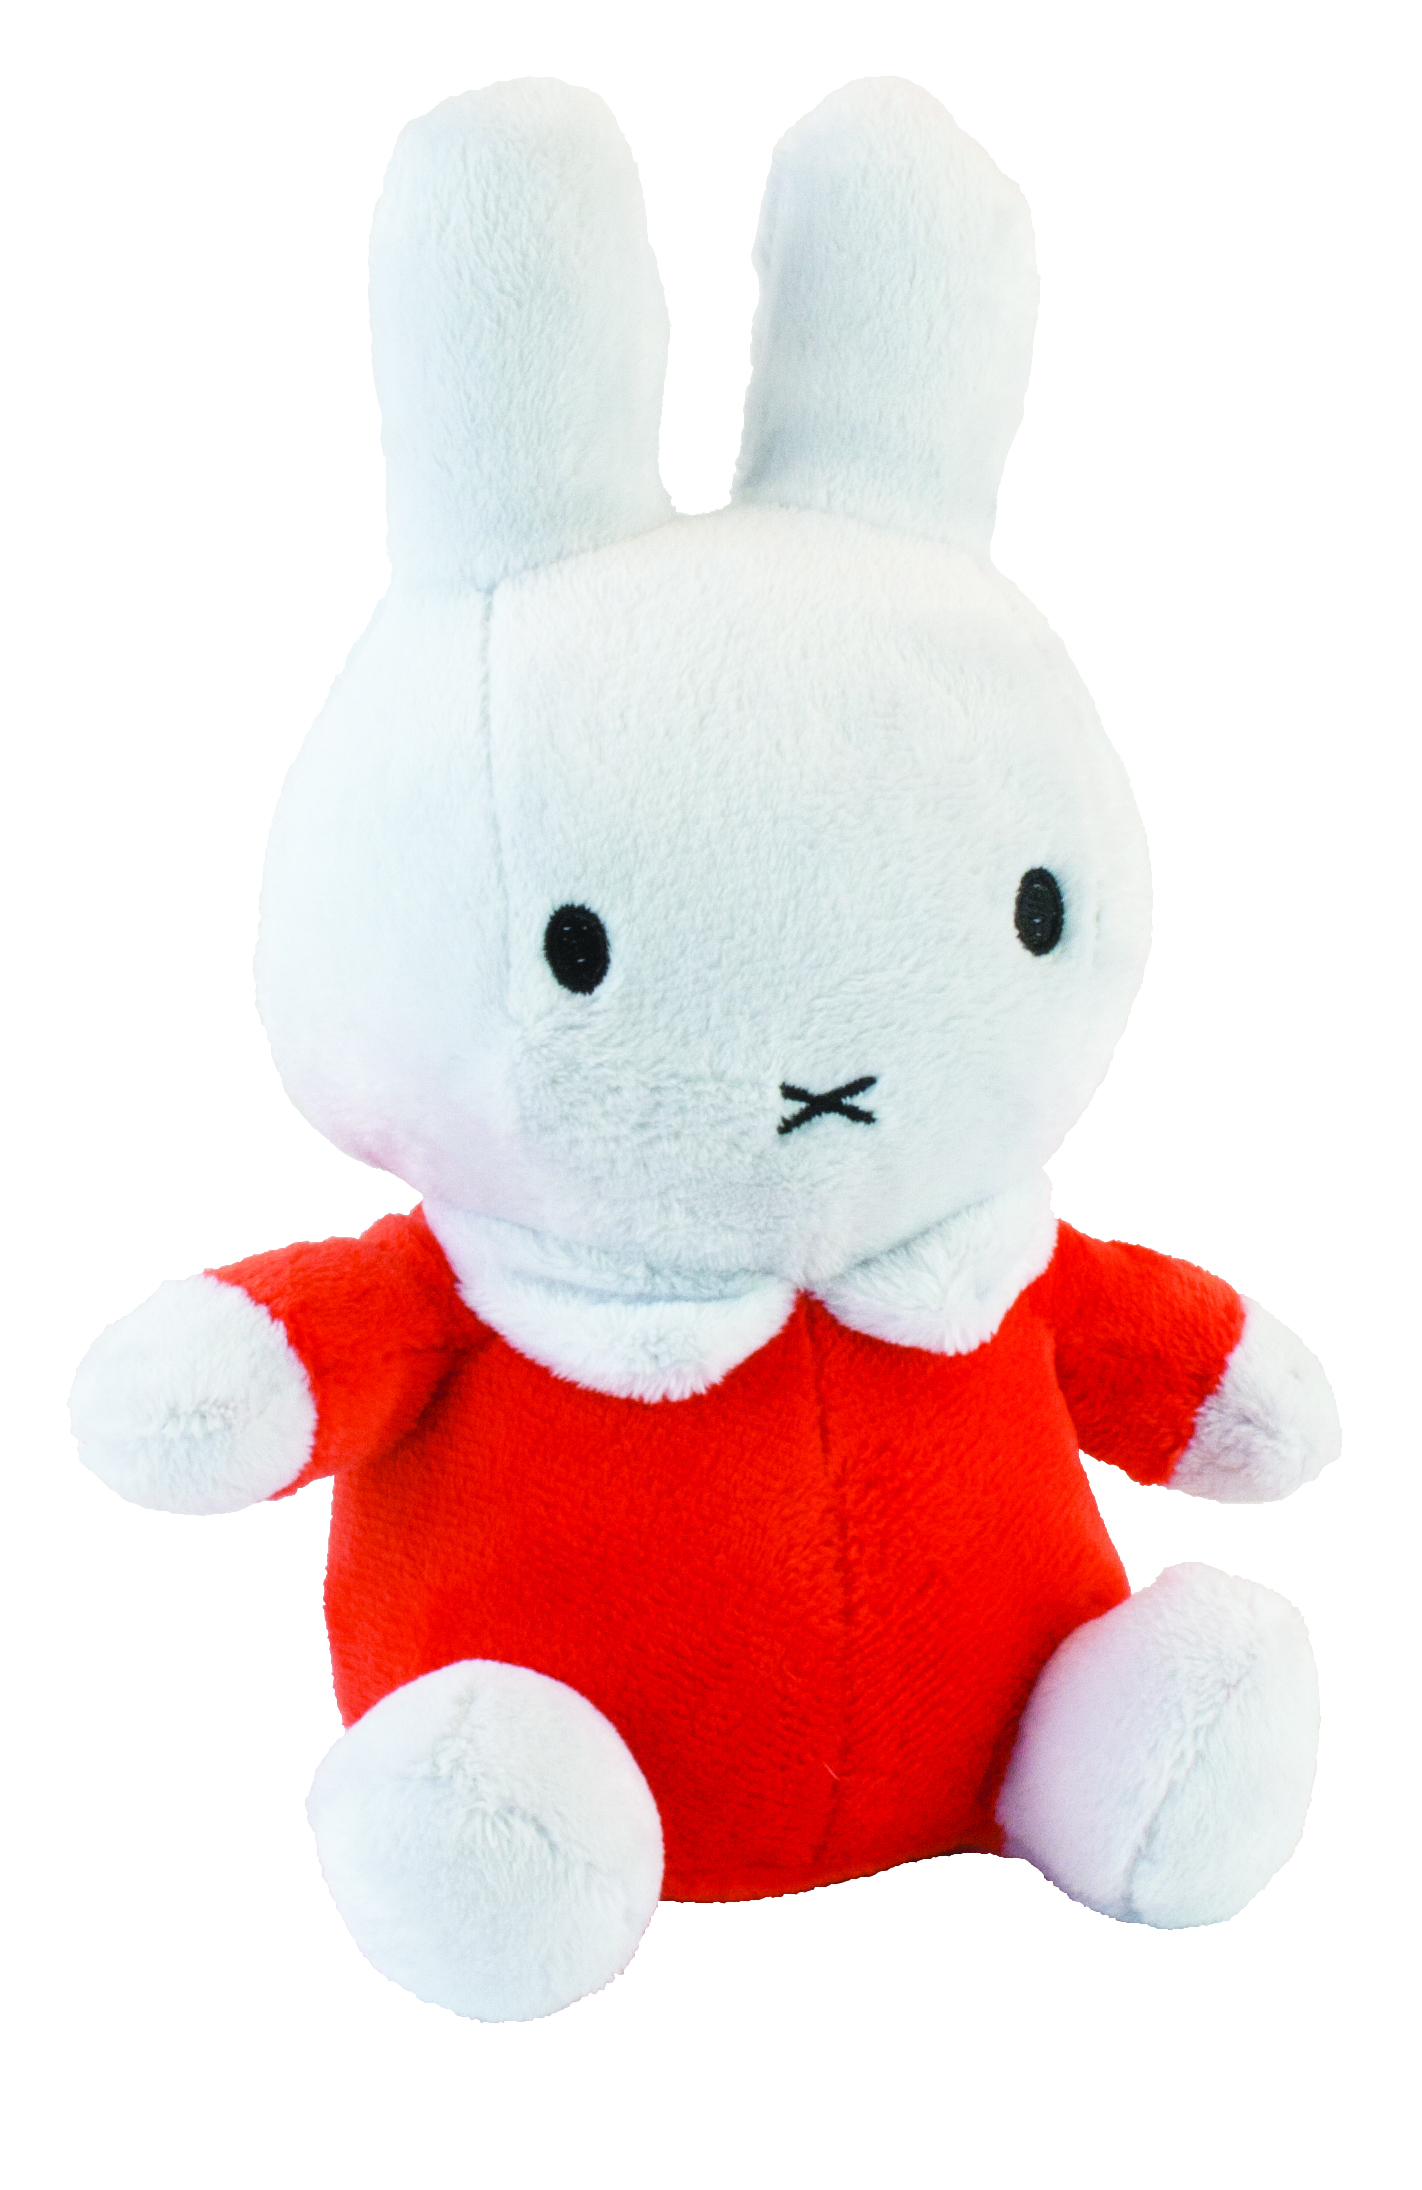 194848 miffy%20orange 331c20 original 1454595647